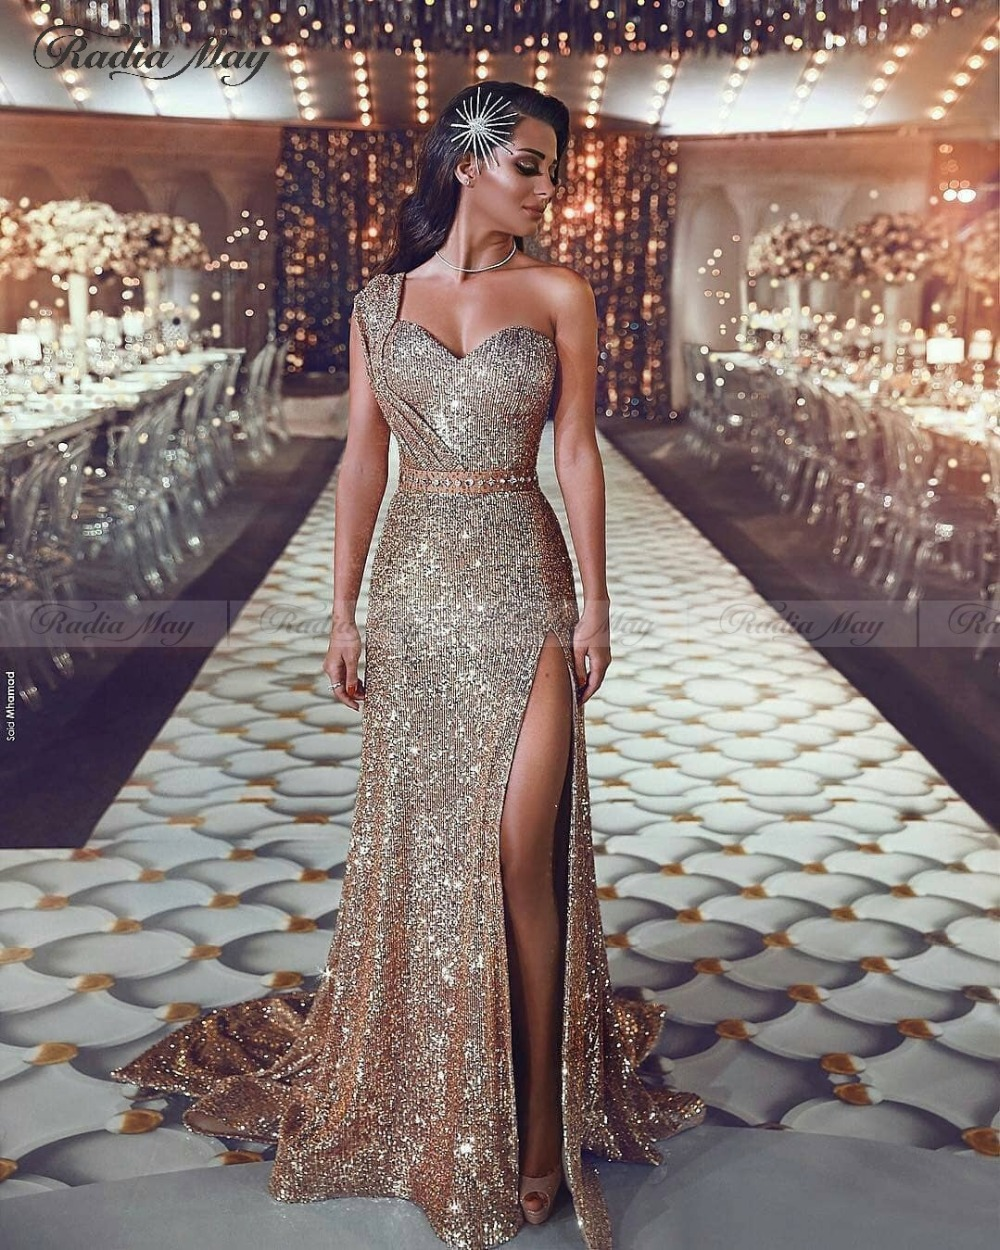 Saudi Arabic One Shoulder Mermaid Rose Gold Evening Dress Long Sparkly Sequin Dubai Prom Dresses with